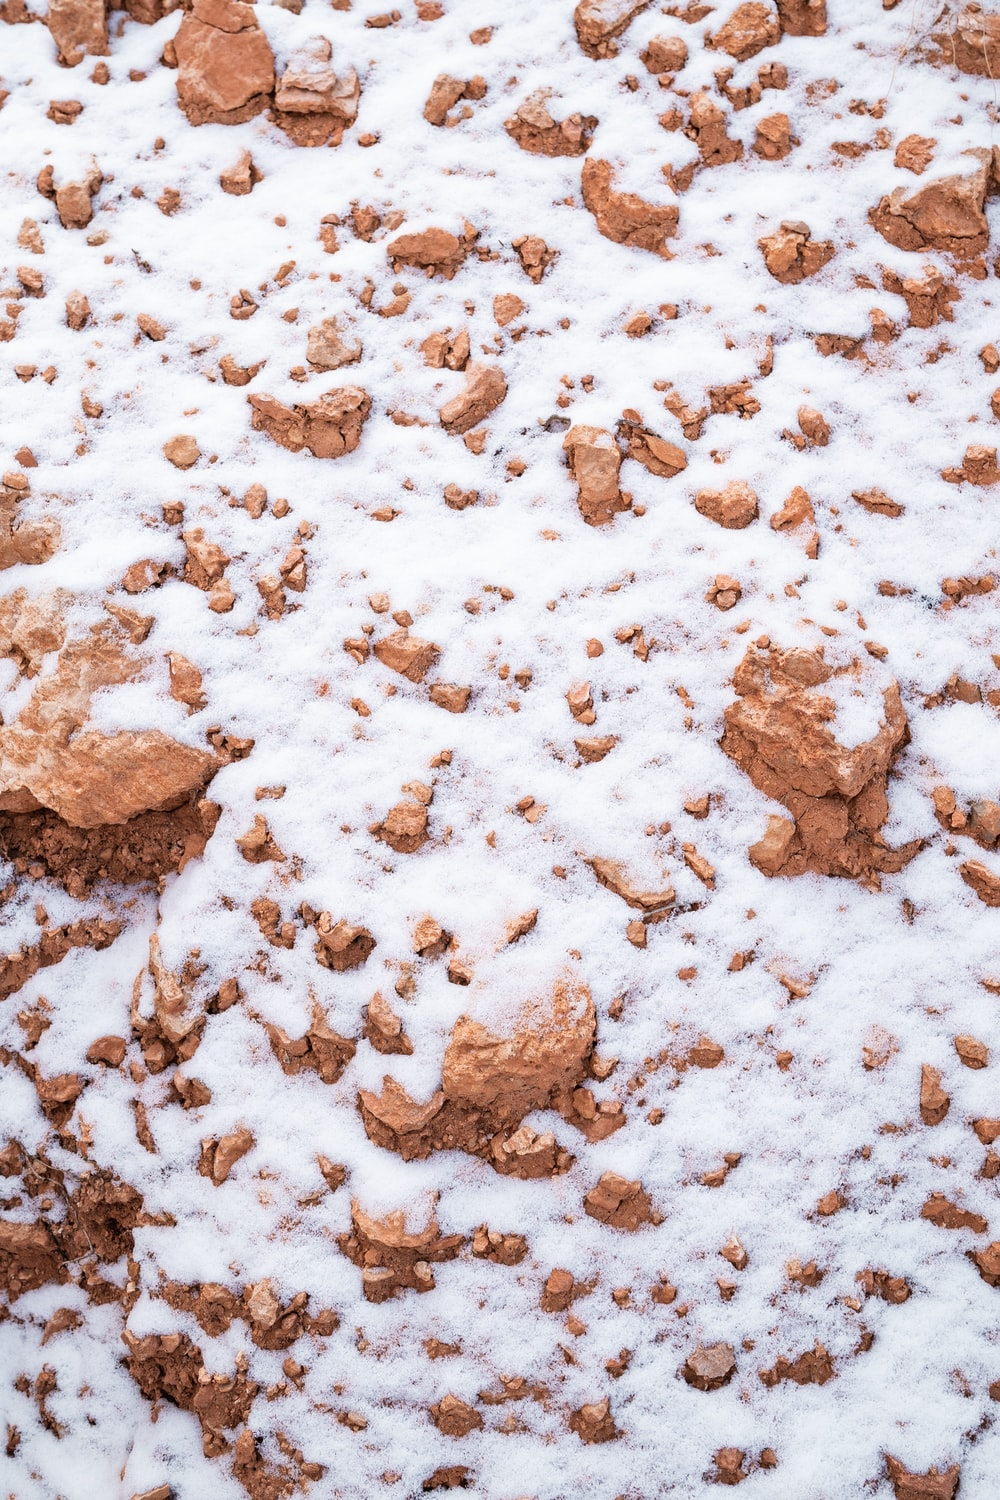 snow on brown dirt